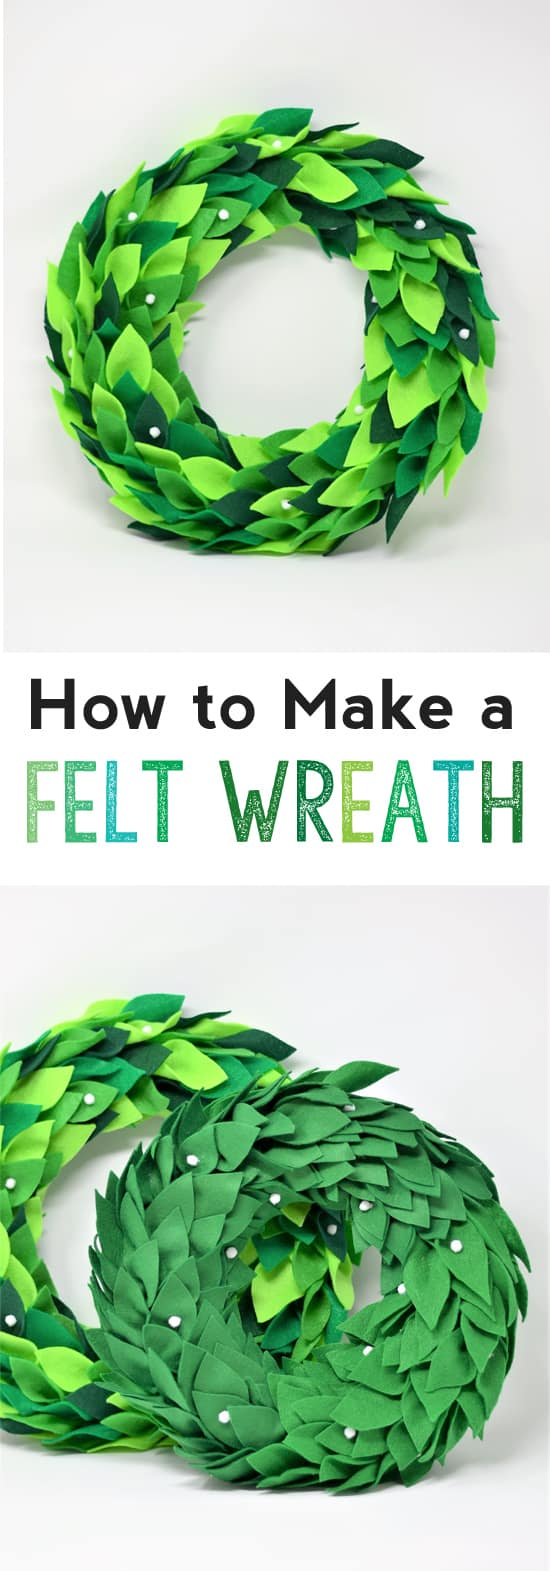 felt wreath diy | how to make a felt wreath | wreath tutorial | magnolia wreath | felt crafts | diy | home decor | crafts | how to make a wreath